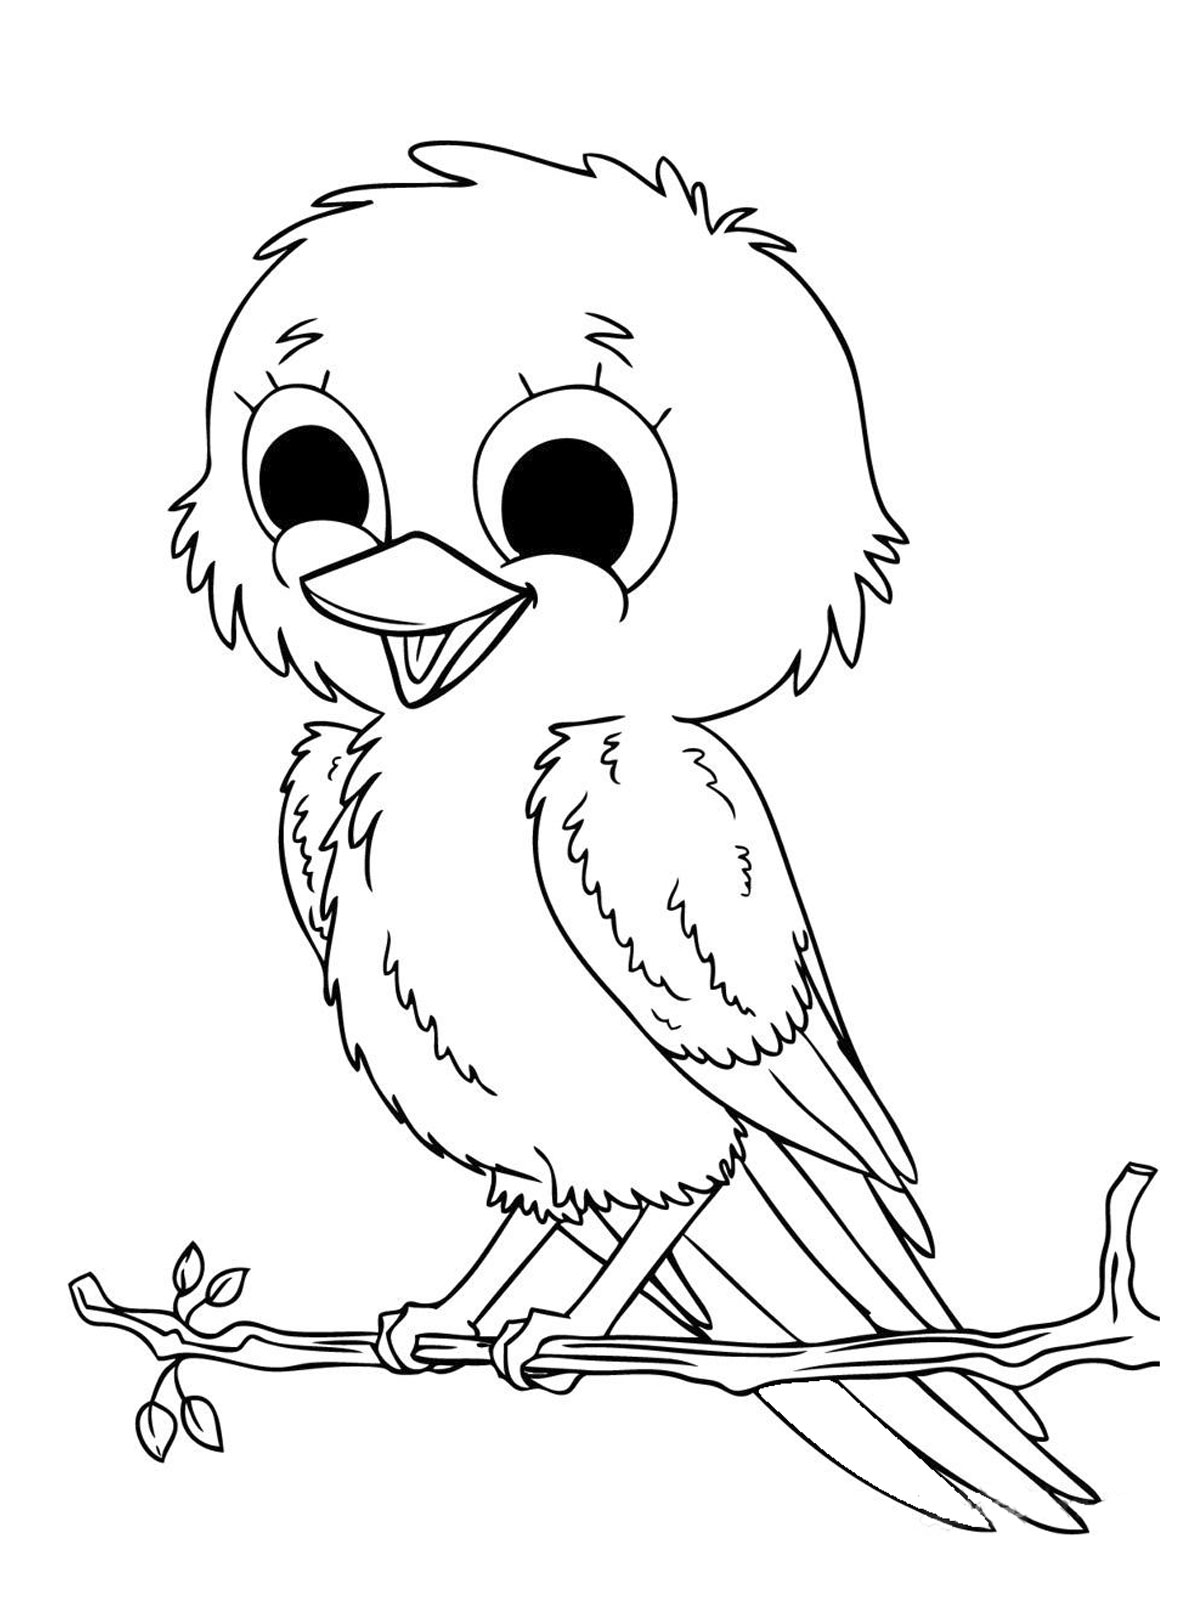 Download All Baby Animals Coloring Pages Below Including Fawn Young